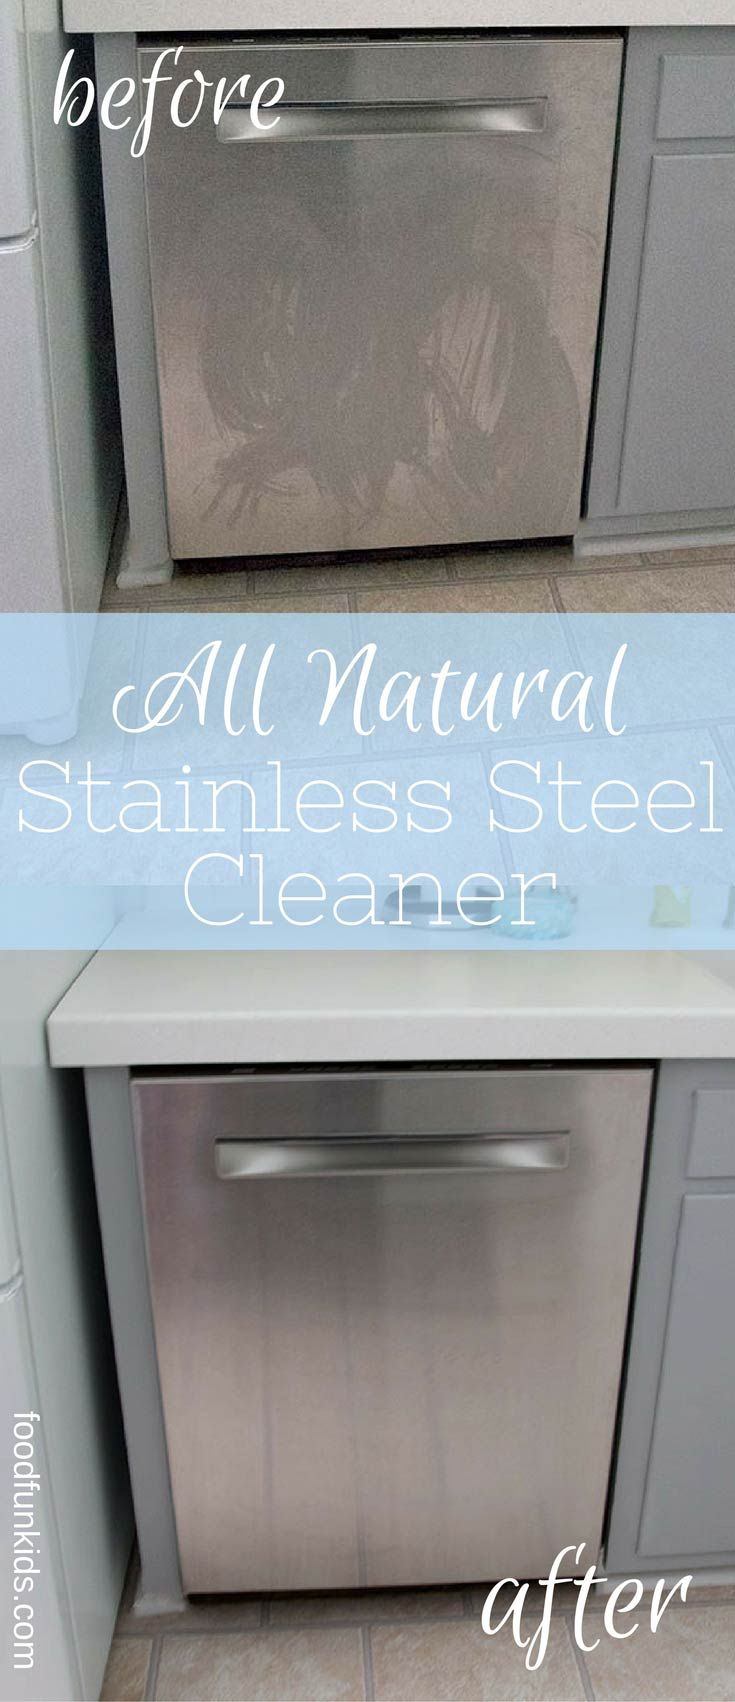 All Natural Homemade Stainless Steel Cleaner with Three Quick and Easy Tips that will leave your stainless steel looking brand new.